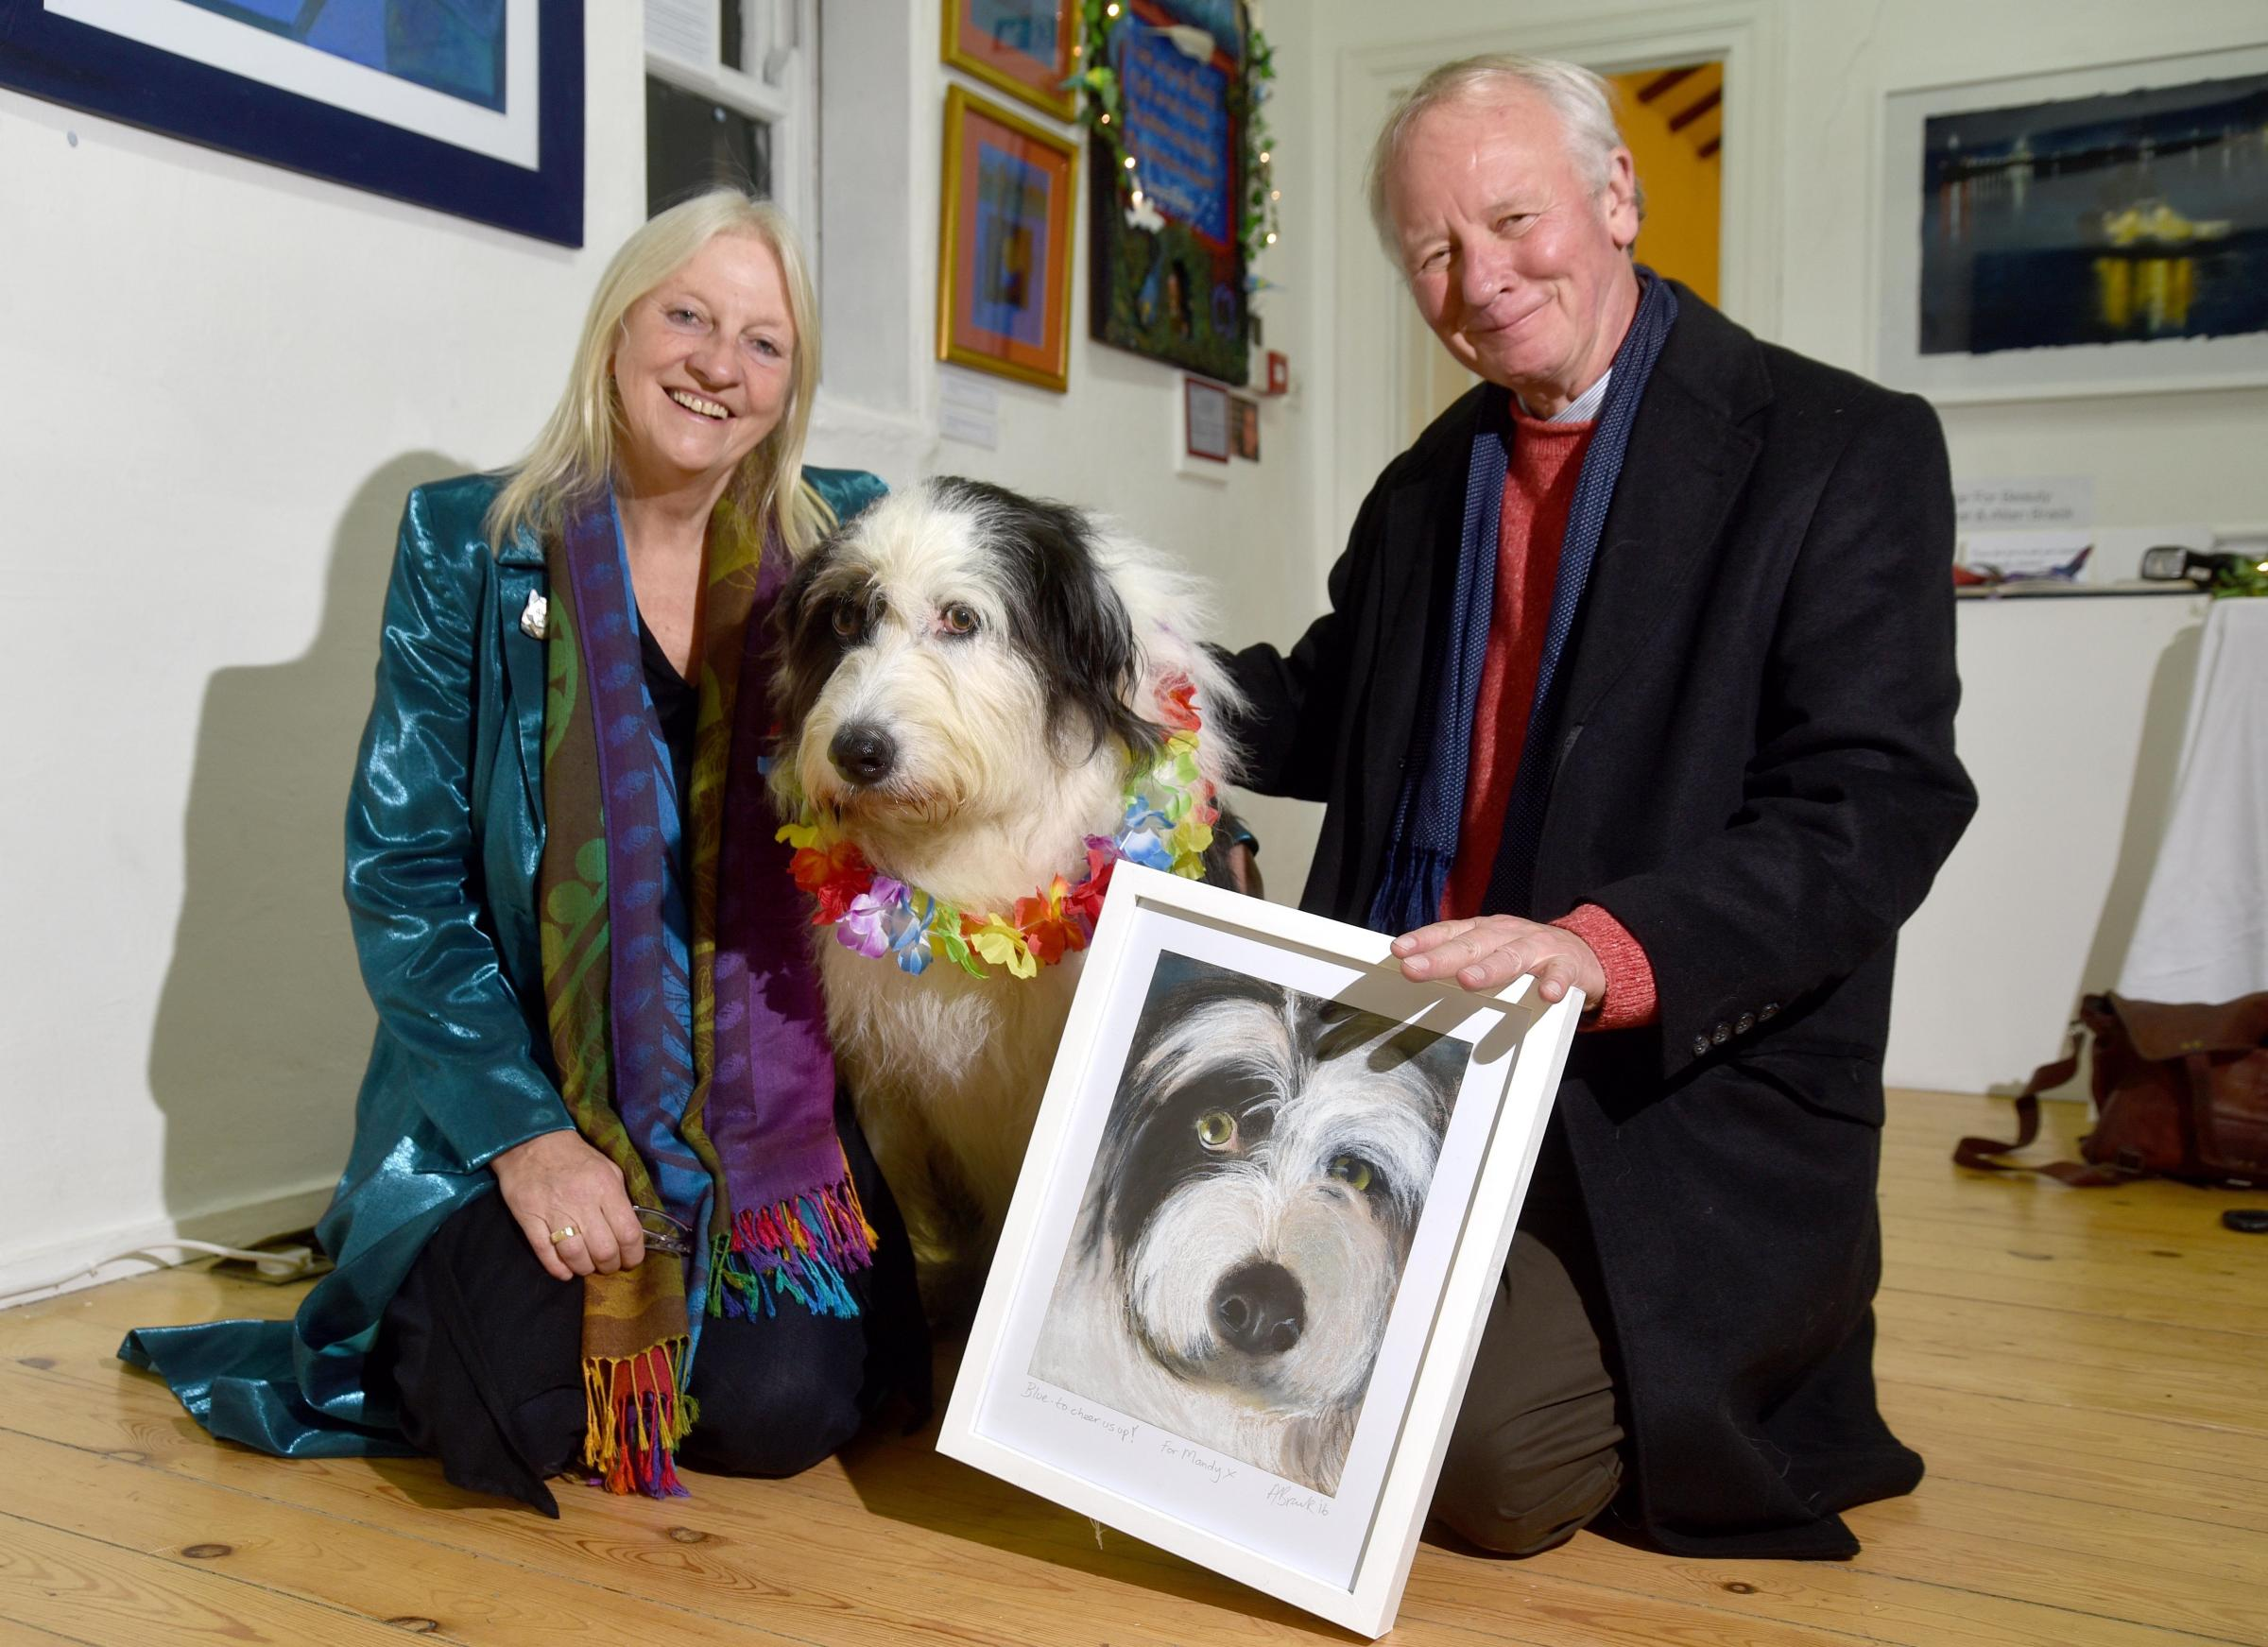 Mandy Farrar and Allan Brack with a painting of Blue the dog